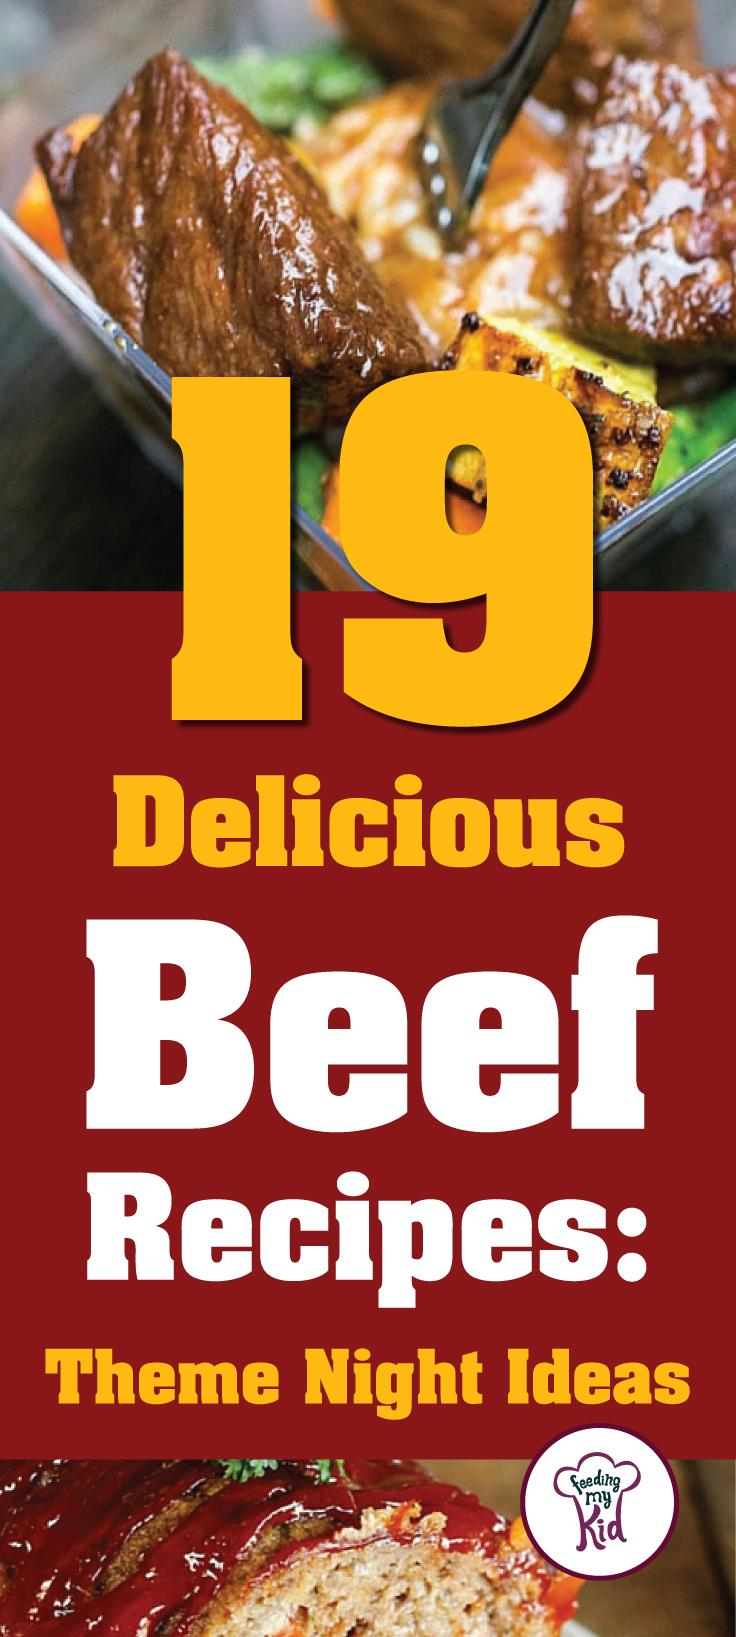 These beef recipes are warm and delicious and will make the perfect dinner for any occasion. Feeding My Kid is a great website for parents, filled with all the information you need about how to raise your kids, from healthy tips to nutritious recipes. #beefitswhatsfordinner #dinner #themenight